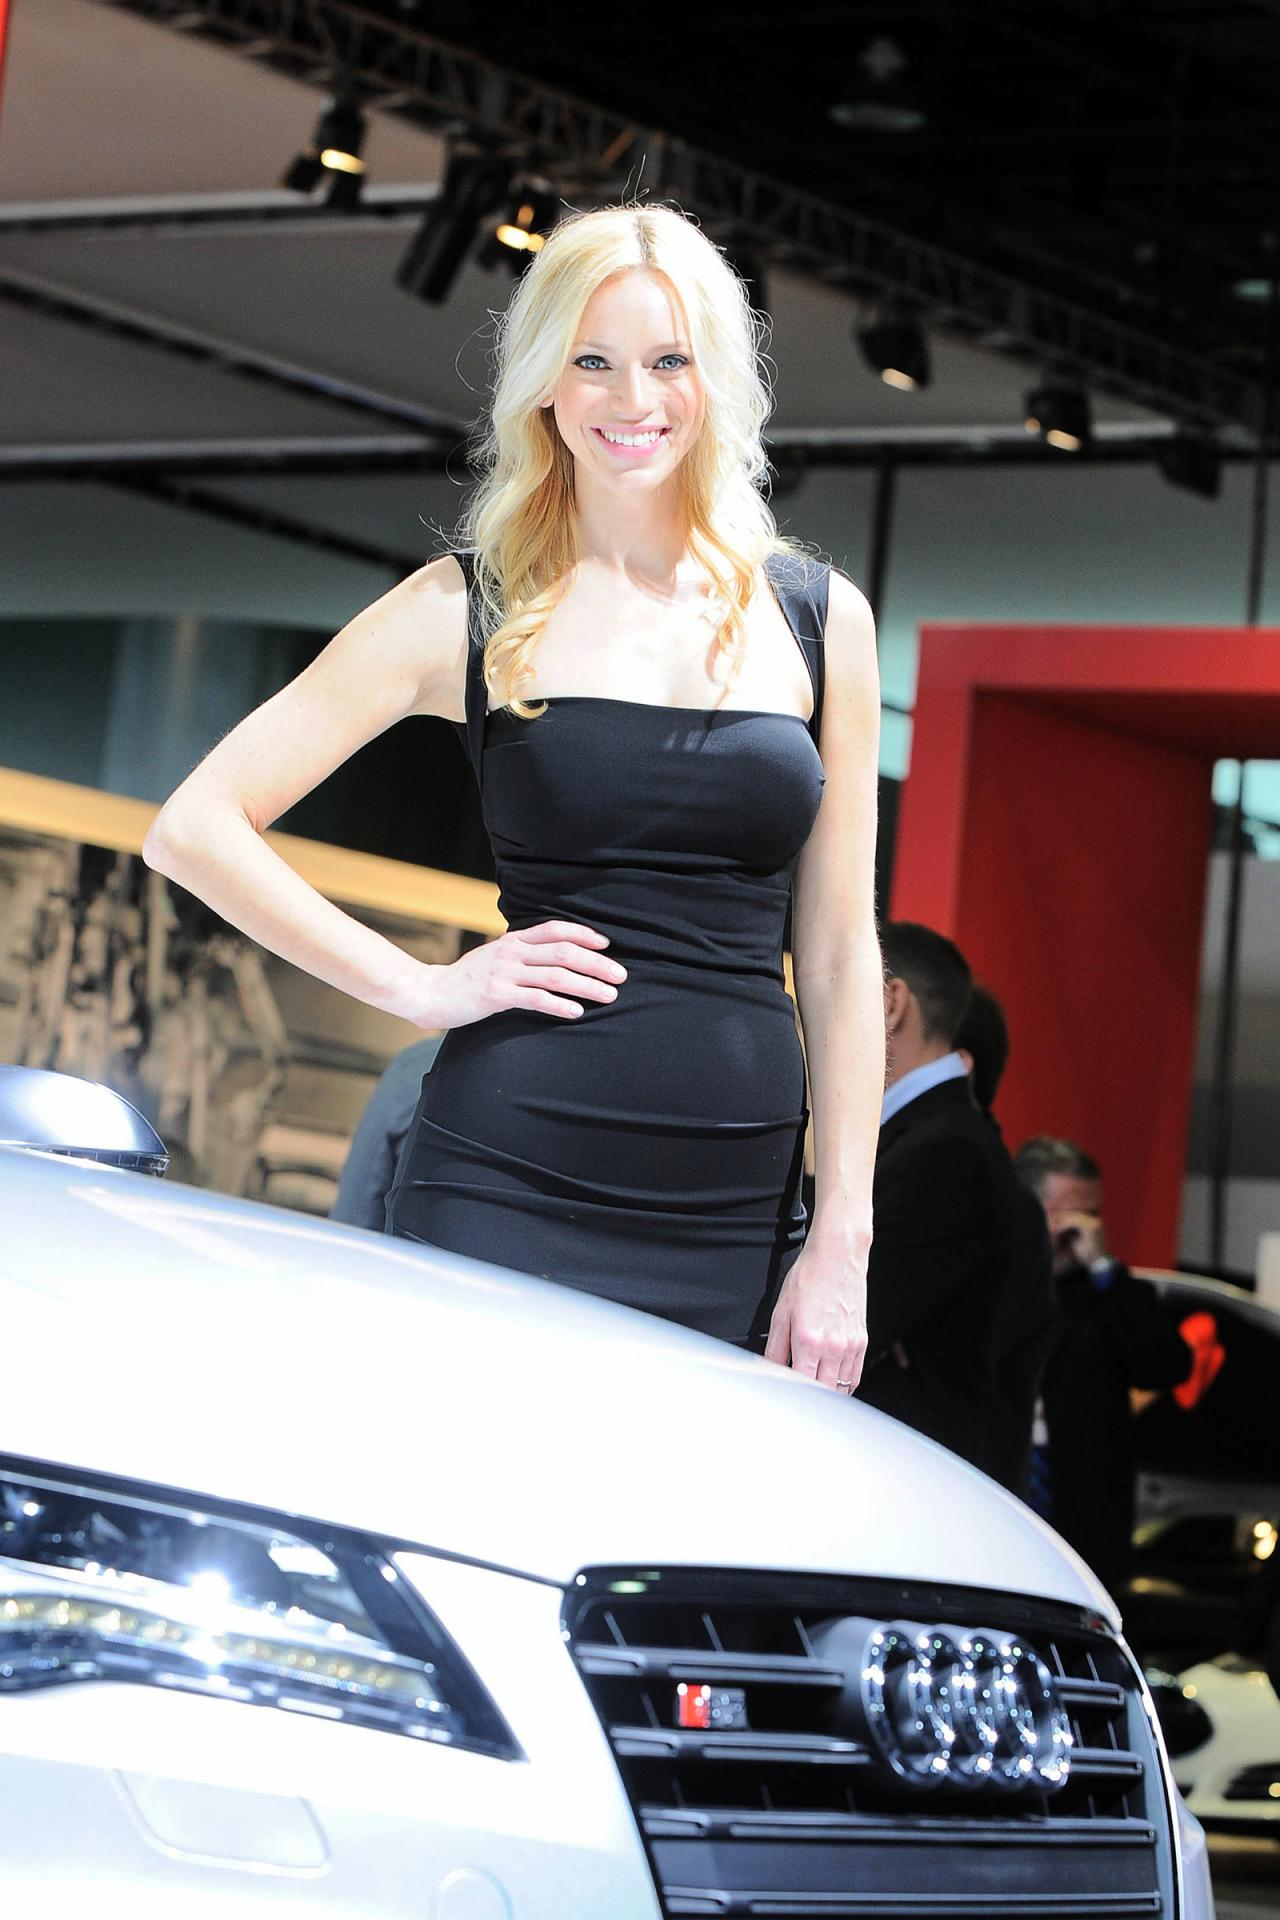 Plug In Hybrid Cars >> Detroit Auto Show Girls - AutoTribute